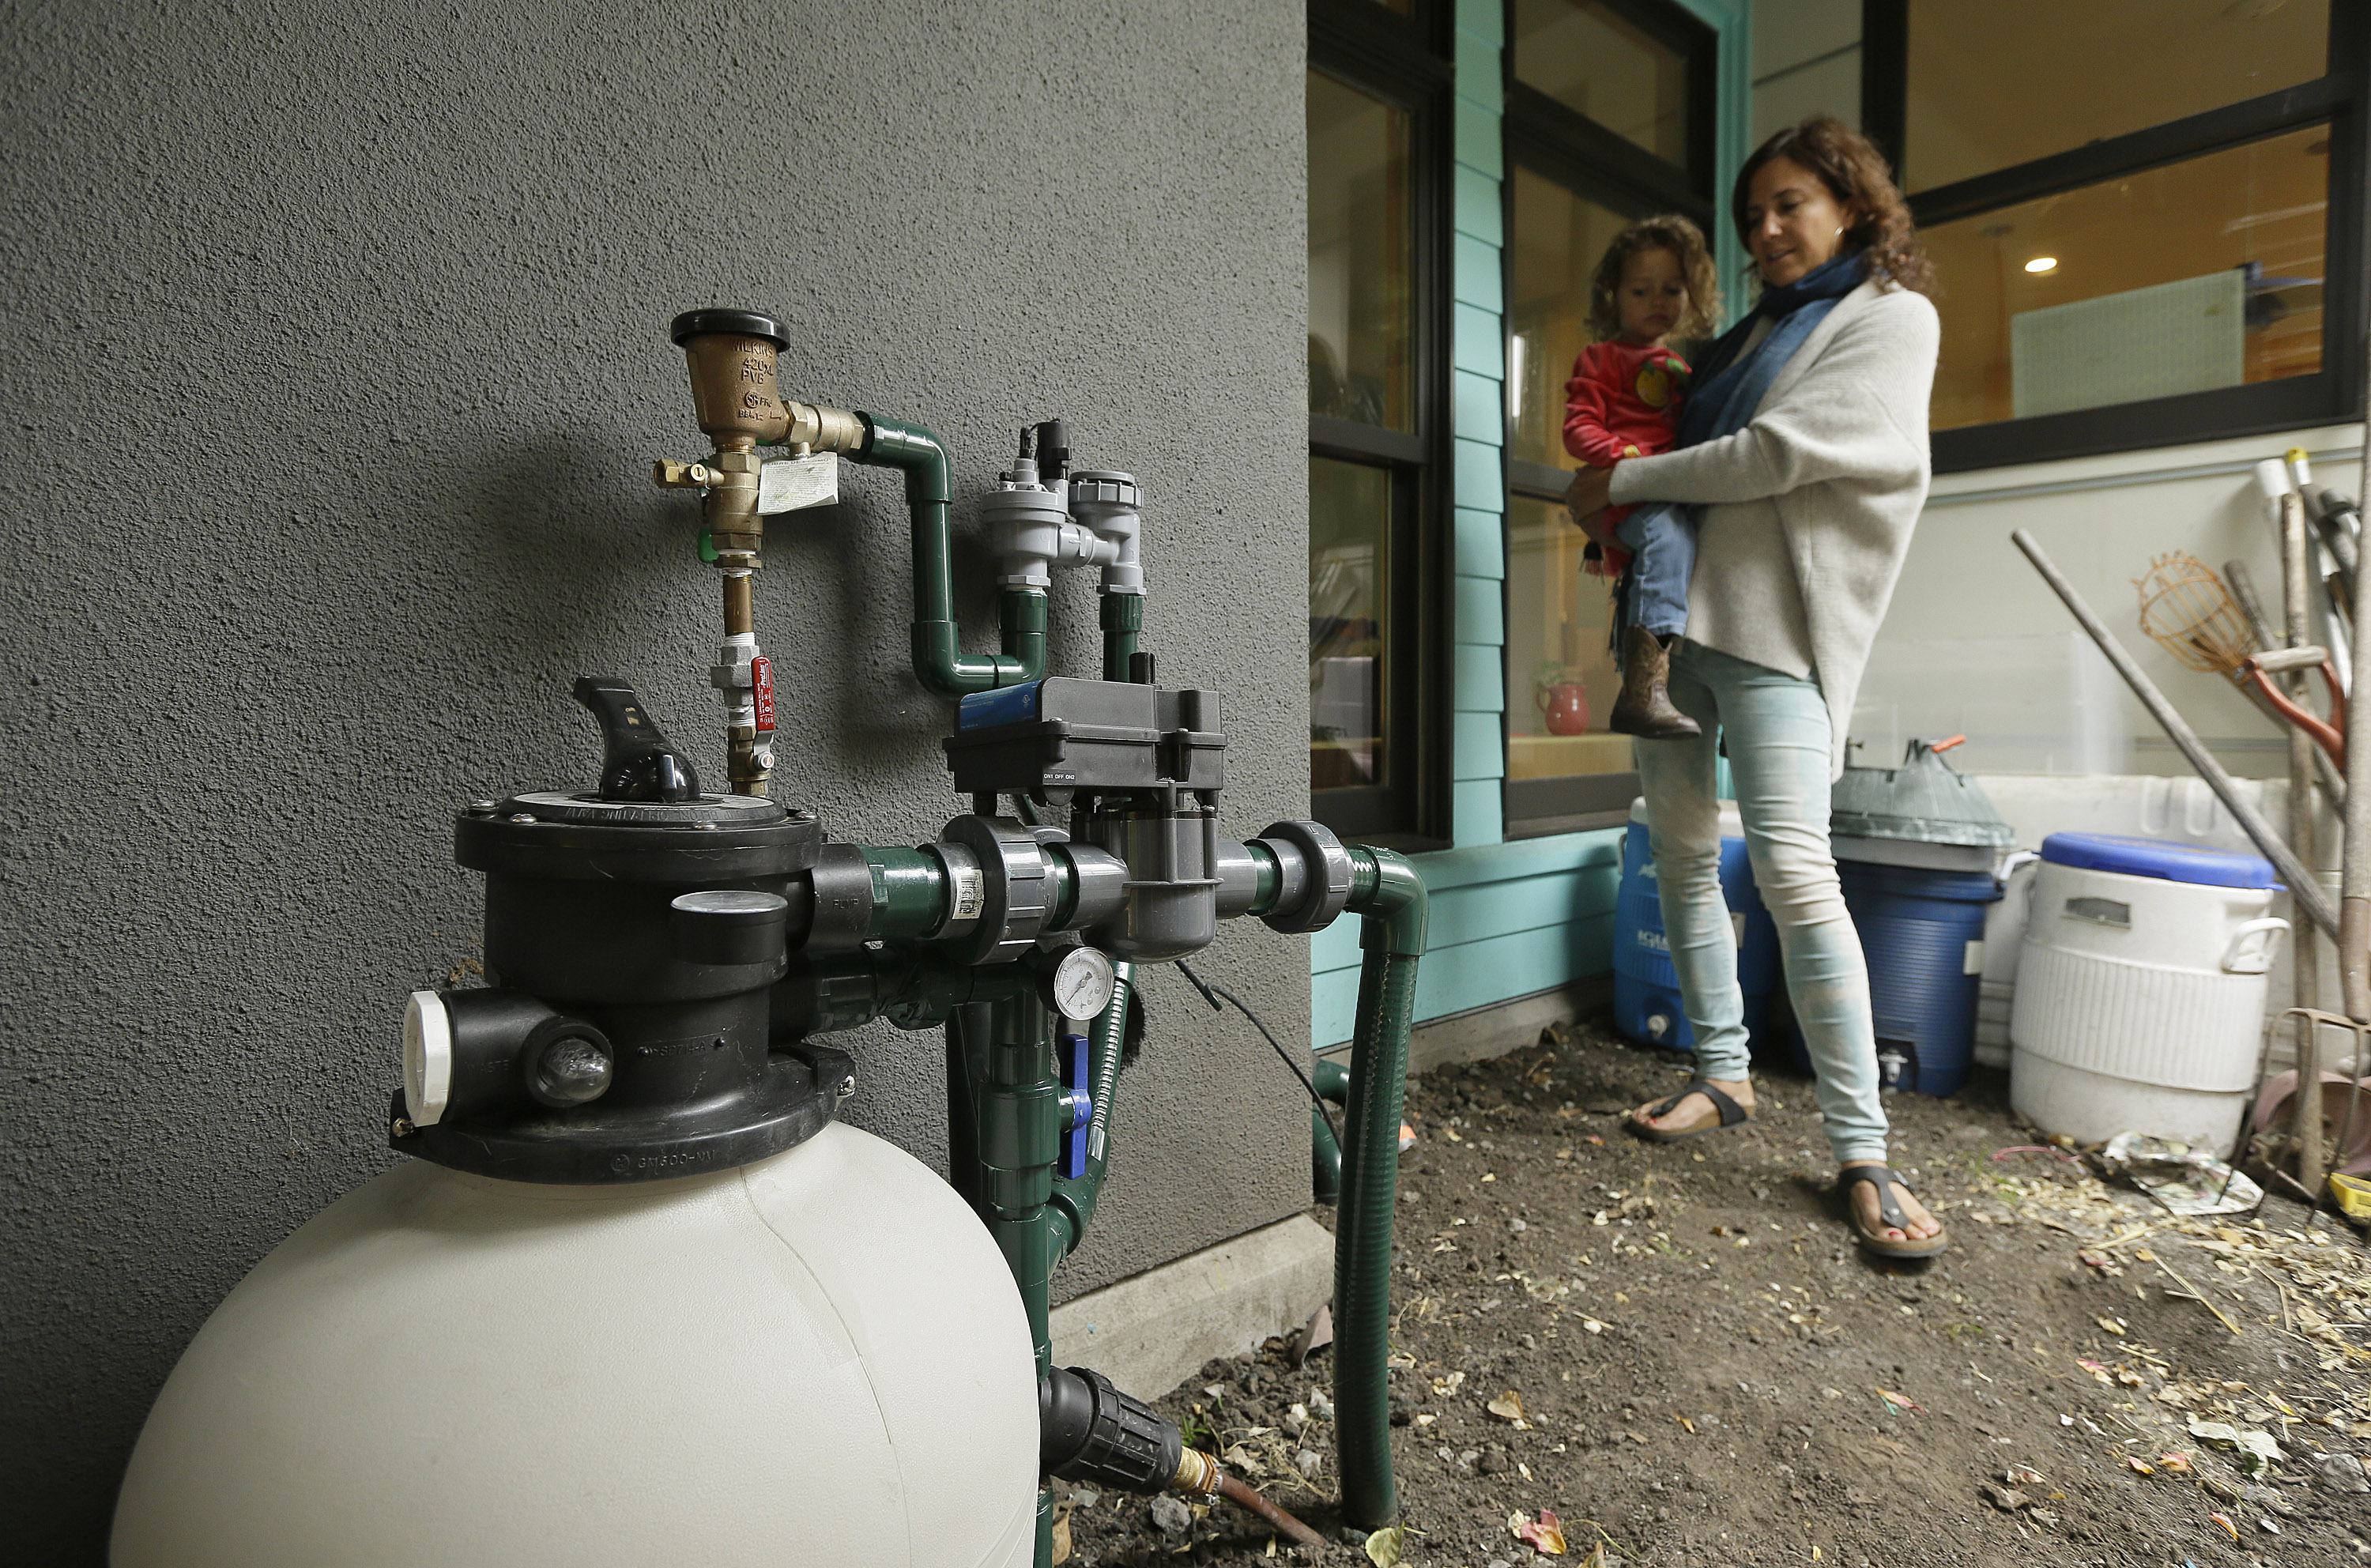 <p>In thisMay2015 photo, Catarina Negrin holds preschooler Alana Nichols while standing near a graywater filtering system outside her home in Berkeley, Calif. Graywater is recycled waste water from kitchen appliances, bath tubs, showers and sinks.</p>